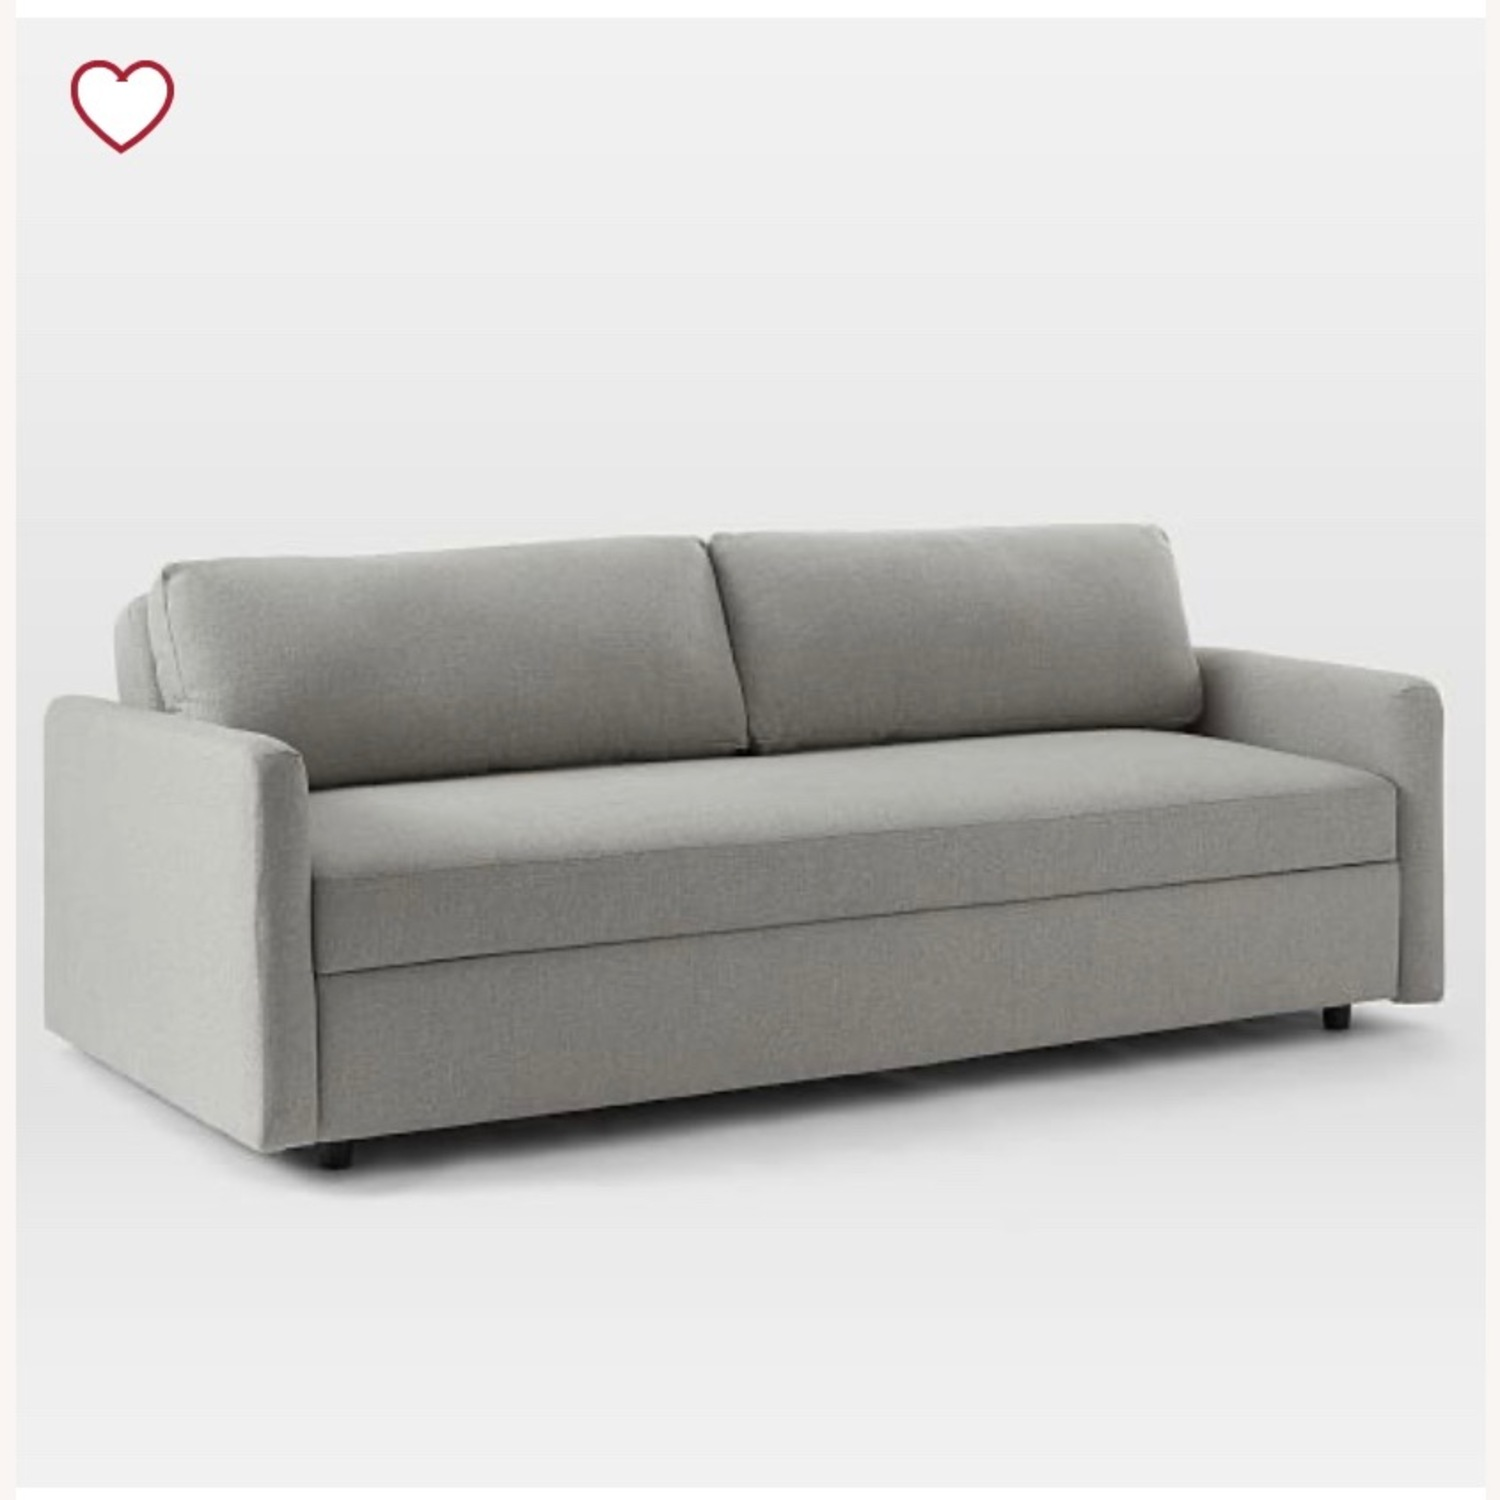 West Elm Clara sleeper sofa - image-1